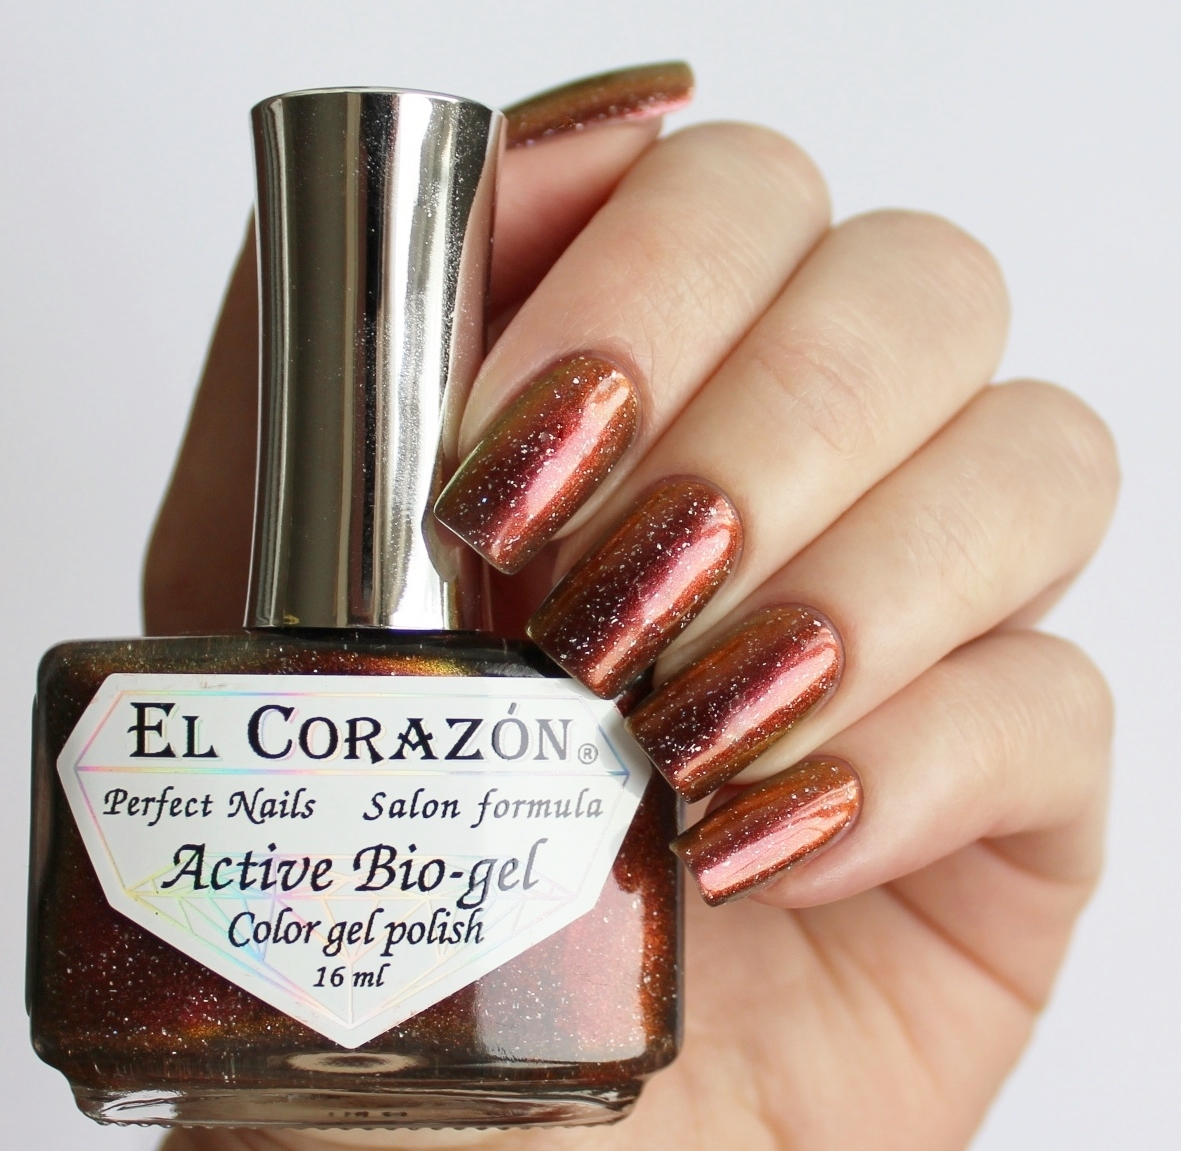 EL Corazon Active Bio-gel Color gel polish Universe 423/762 Virgo Stellar Stream